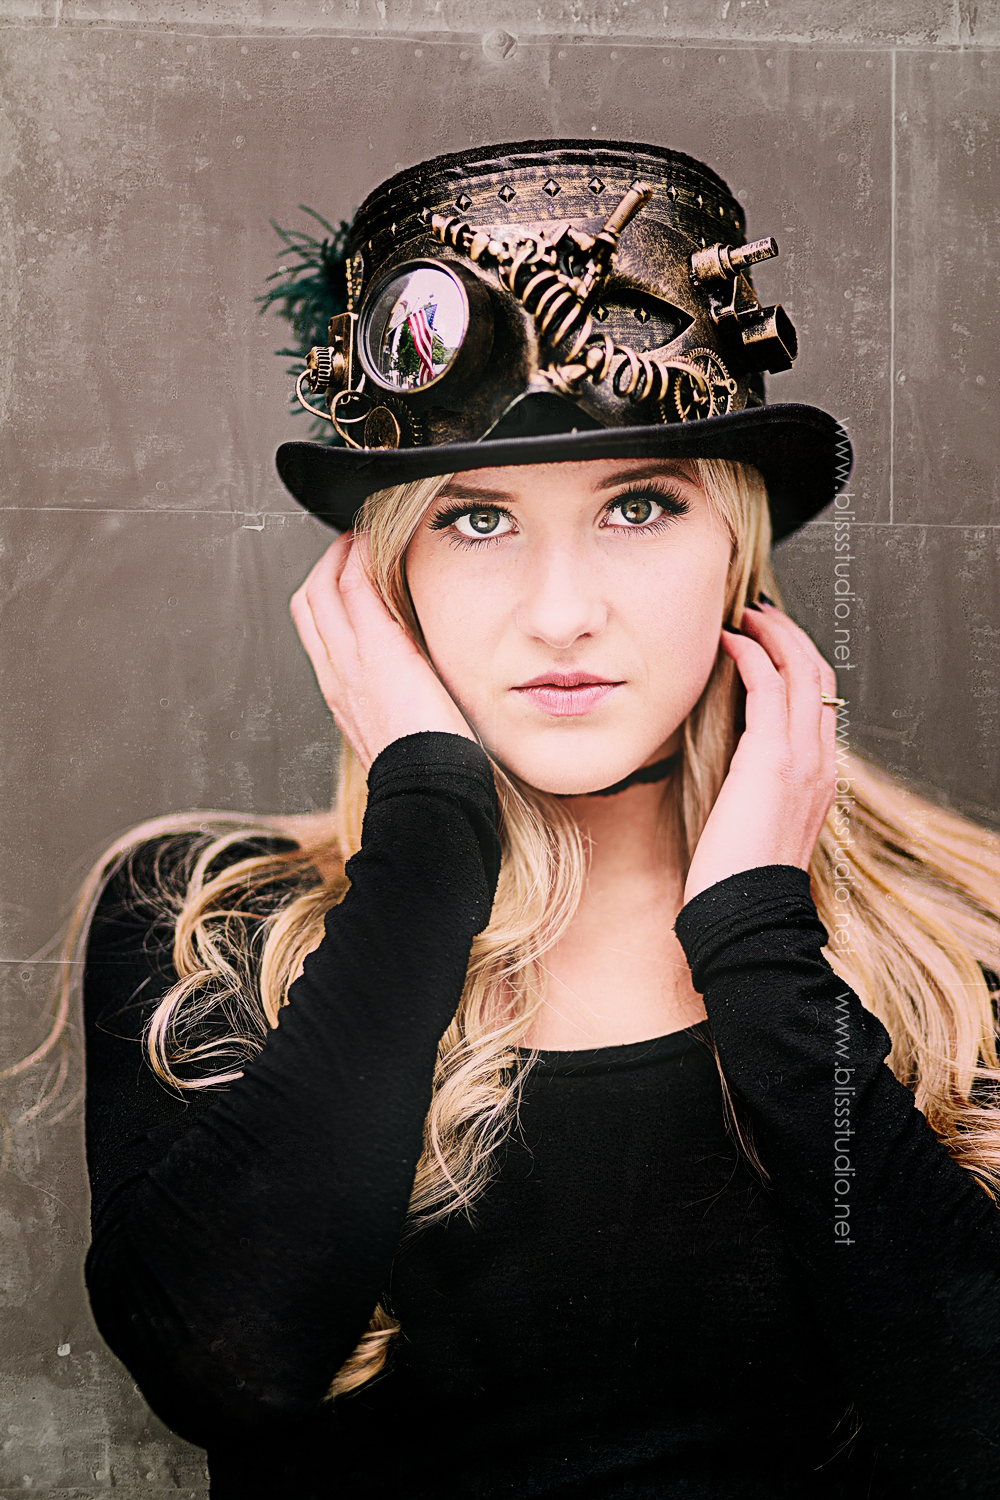 Steam Punk. - Have you seen the new Steam Punk hats at